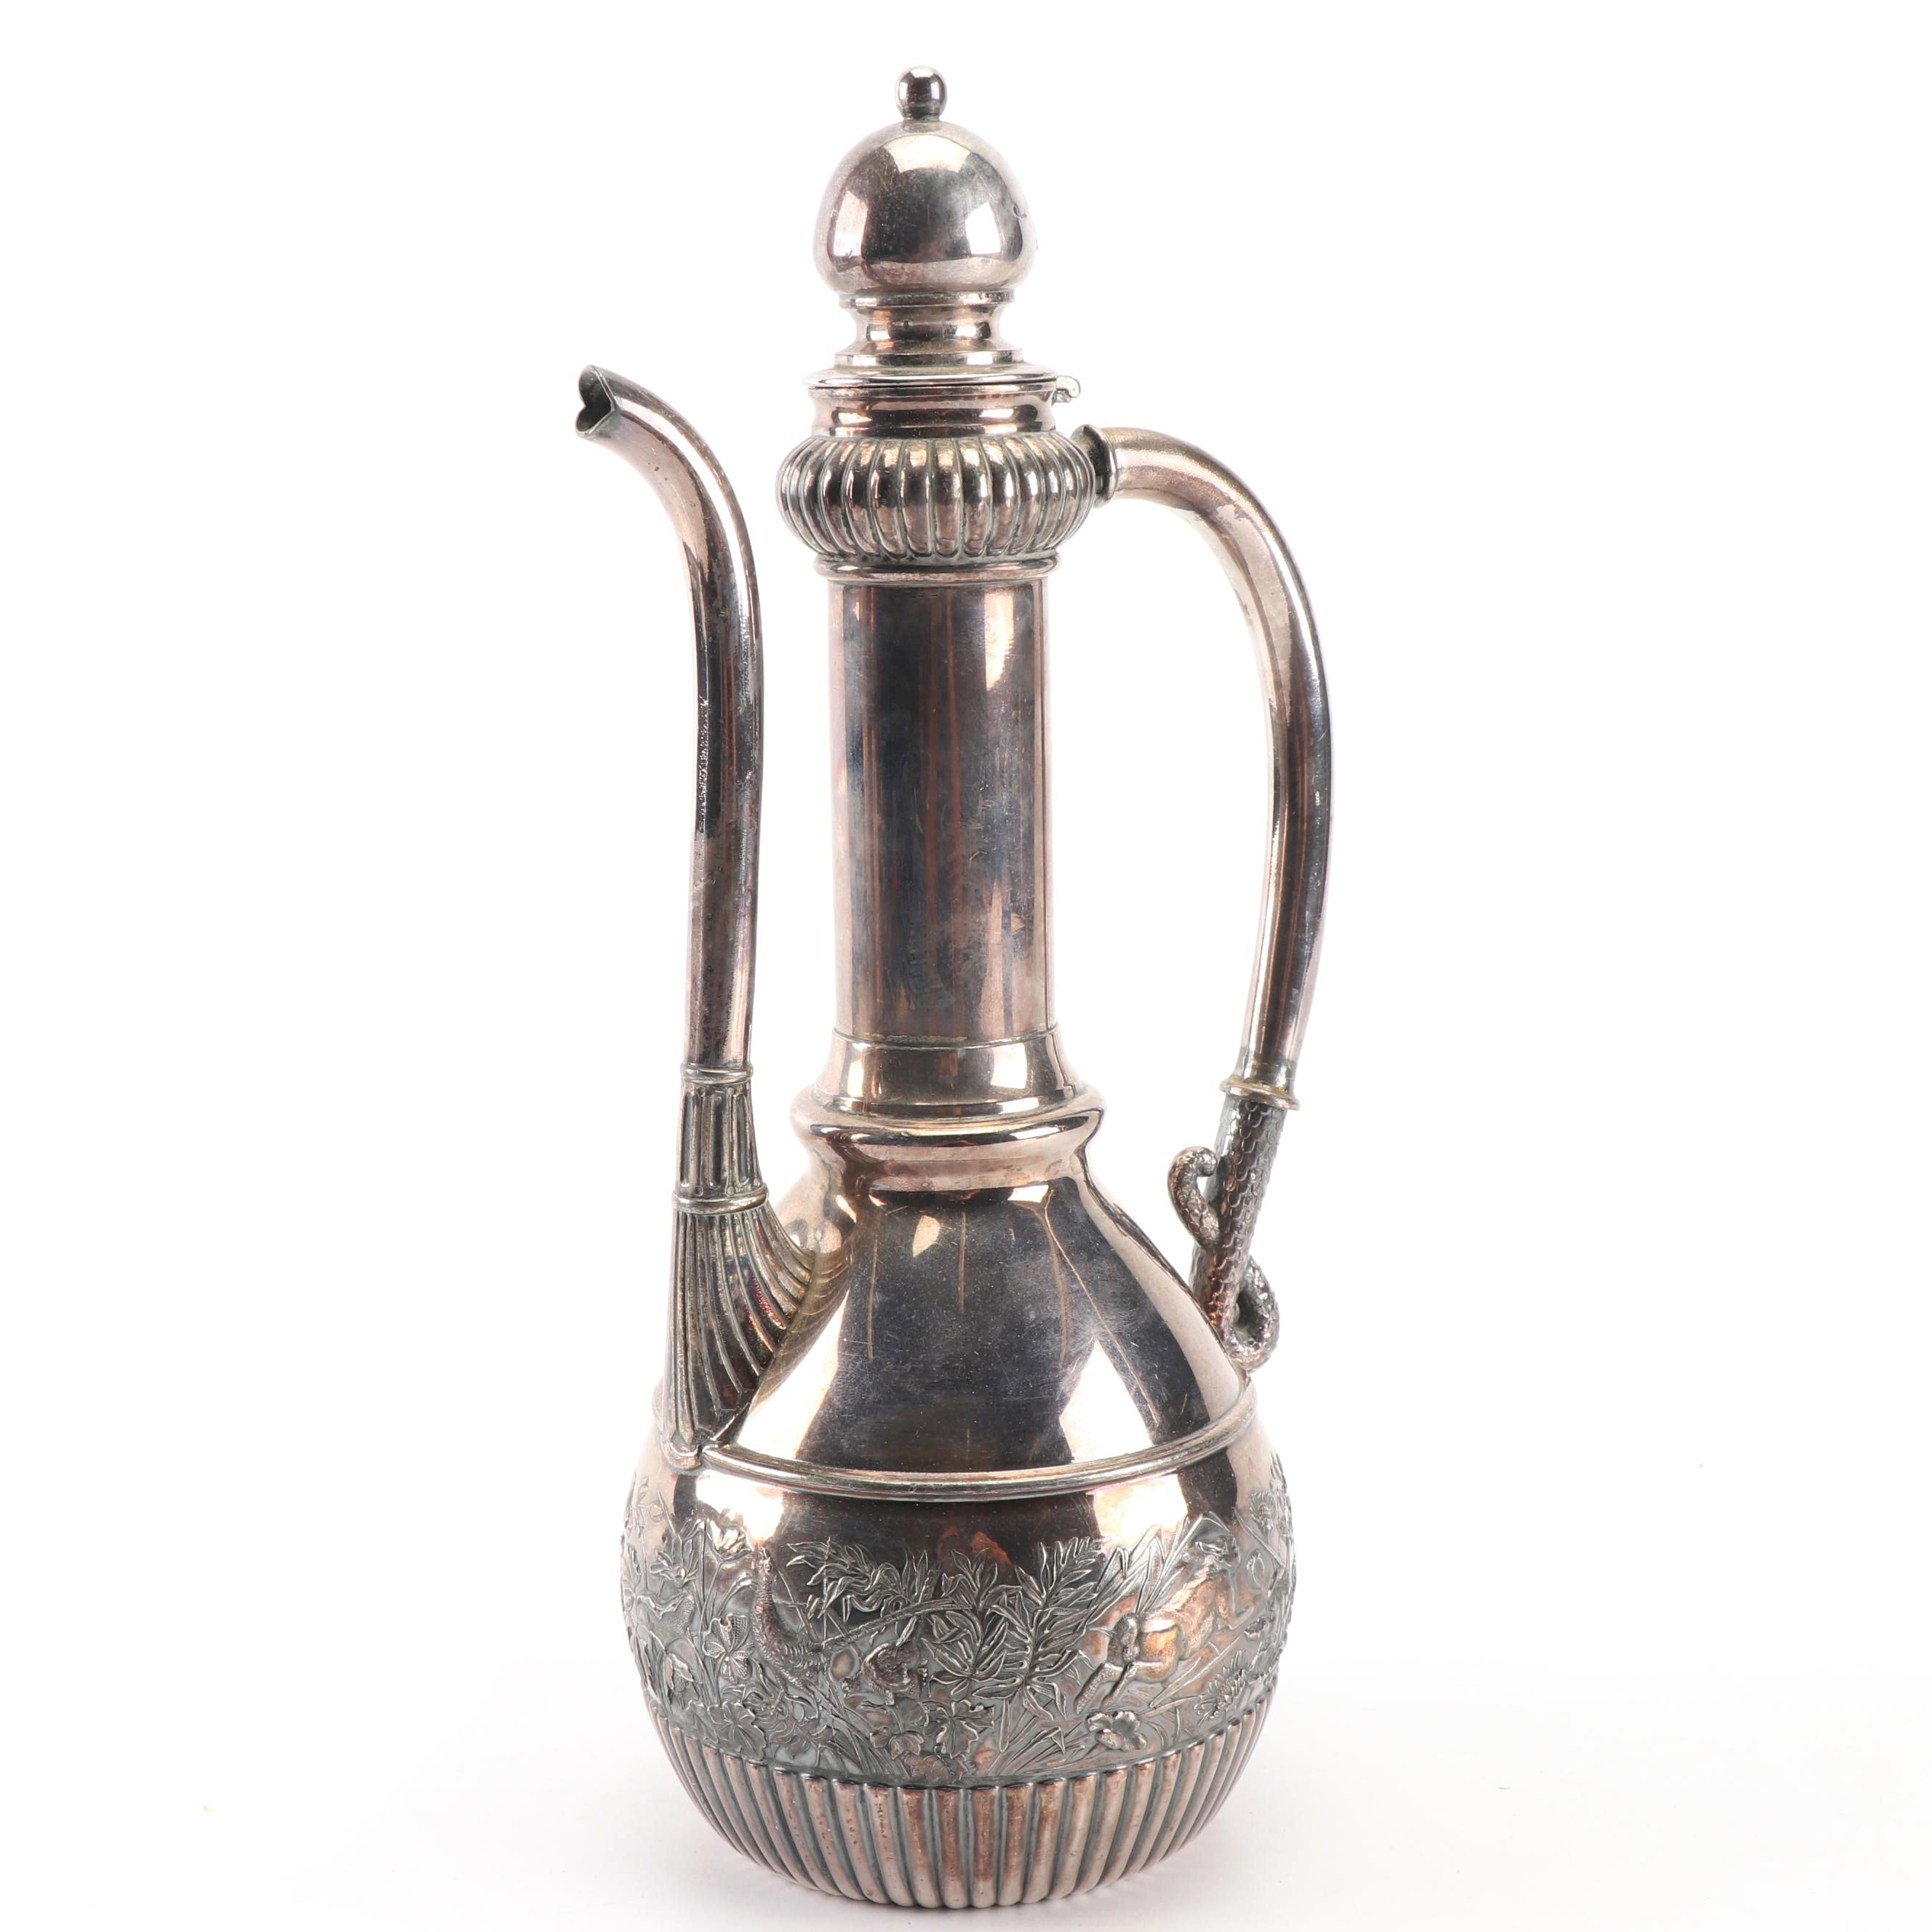 Wilcox Silver Plate Co. Aesthetic Movement Coffee Pot, Late 19th Century